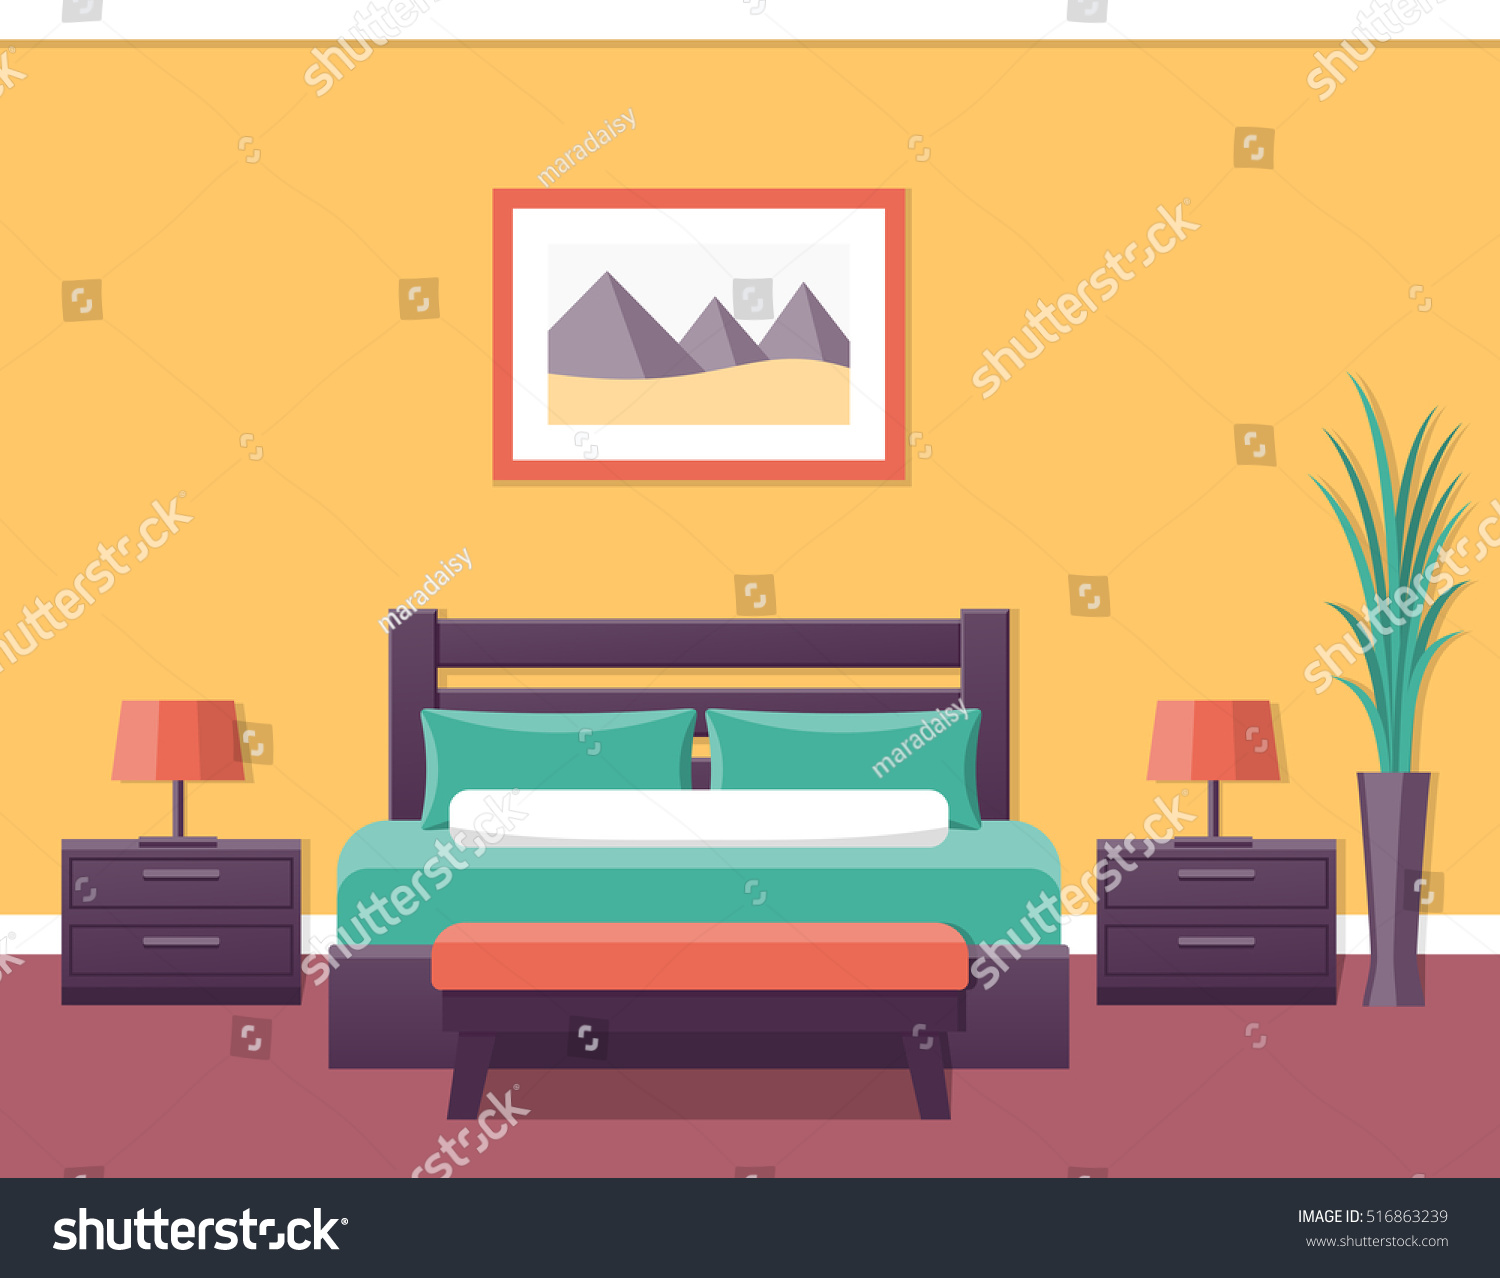 Hotel room flat interior bedroom house stock vector for Interior design images vector